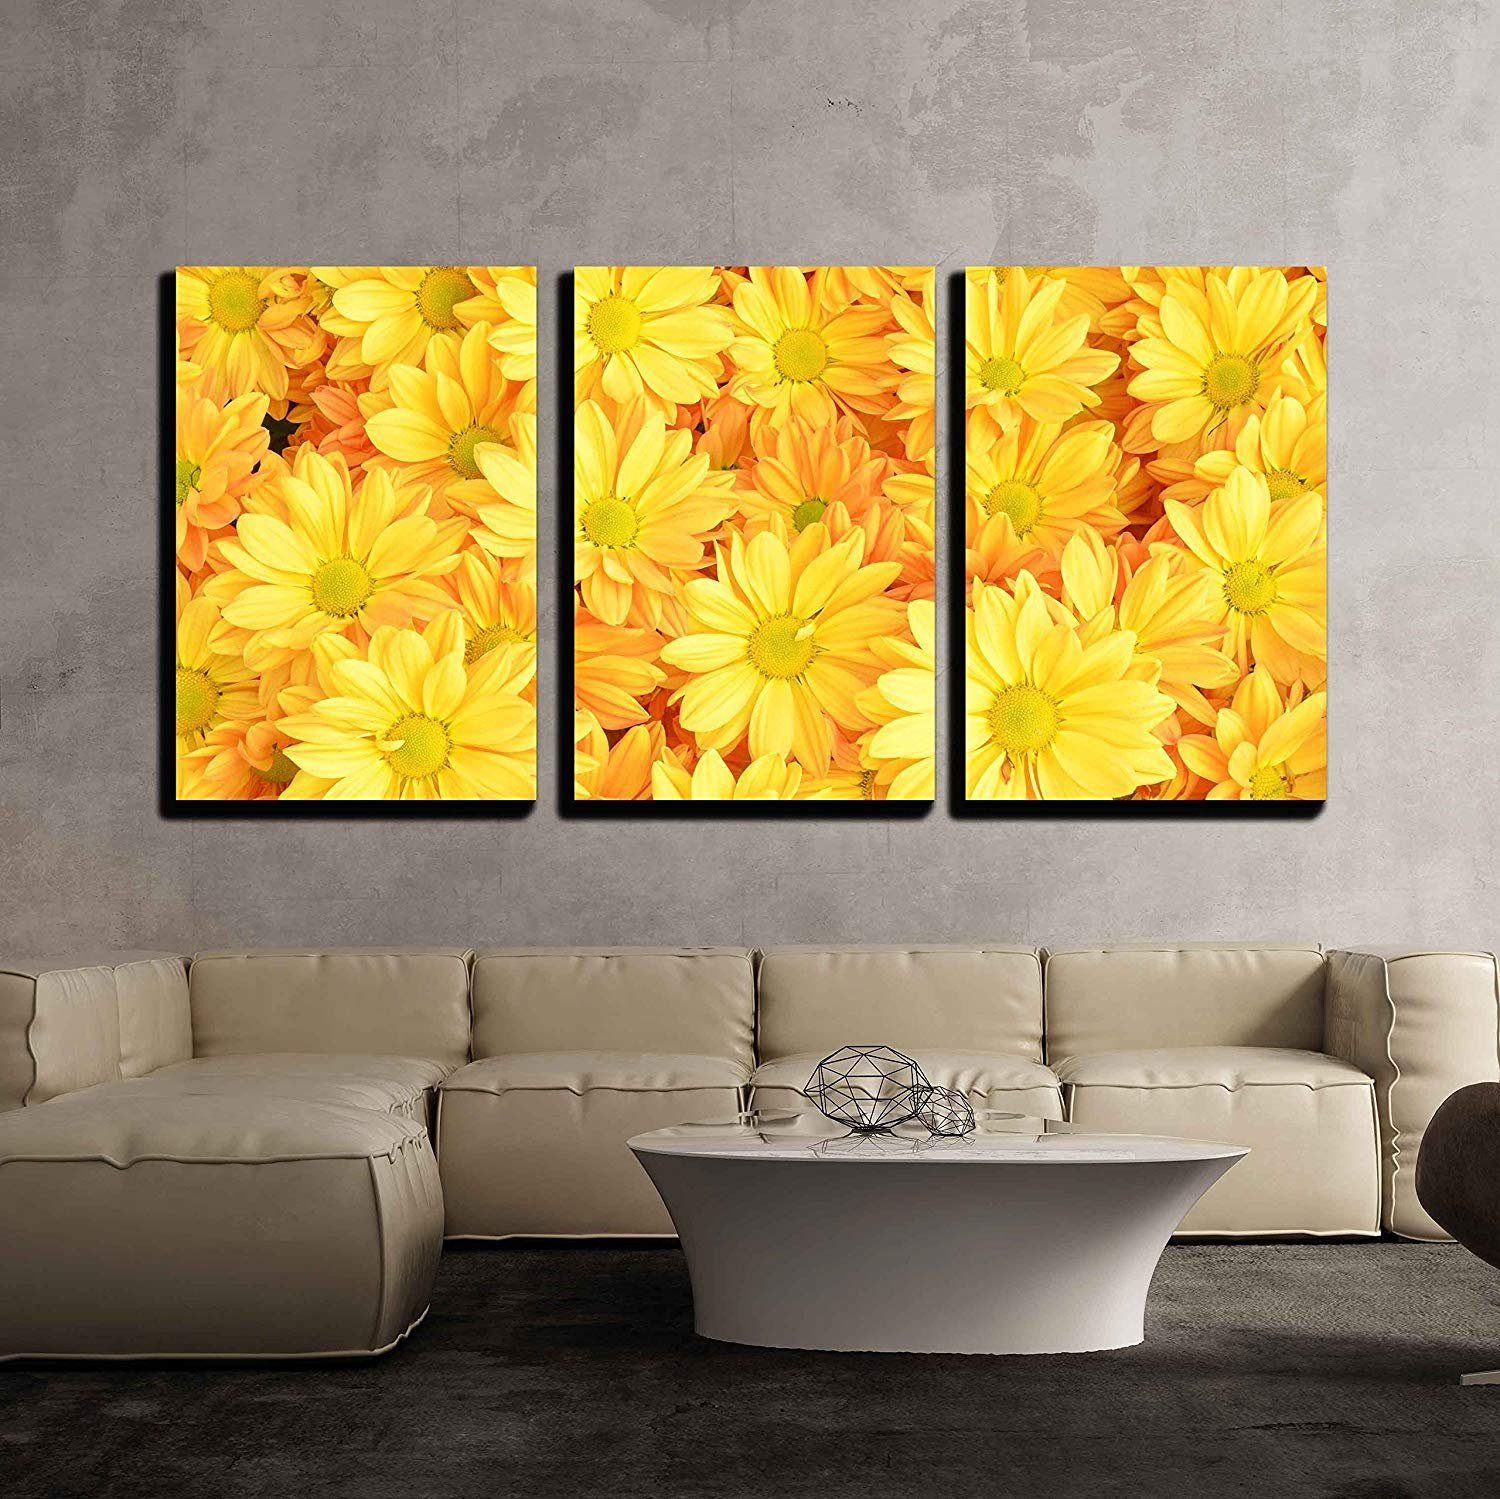 Yellow Chrysanthemum Flowers Background x3 Panels - Canvas Art | Wall26